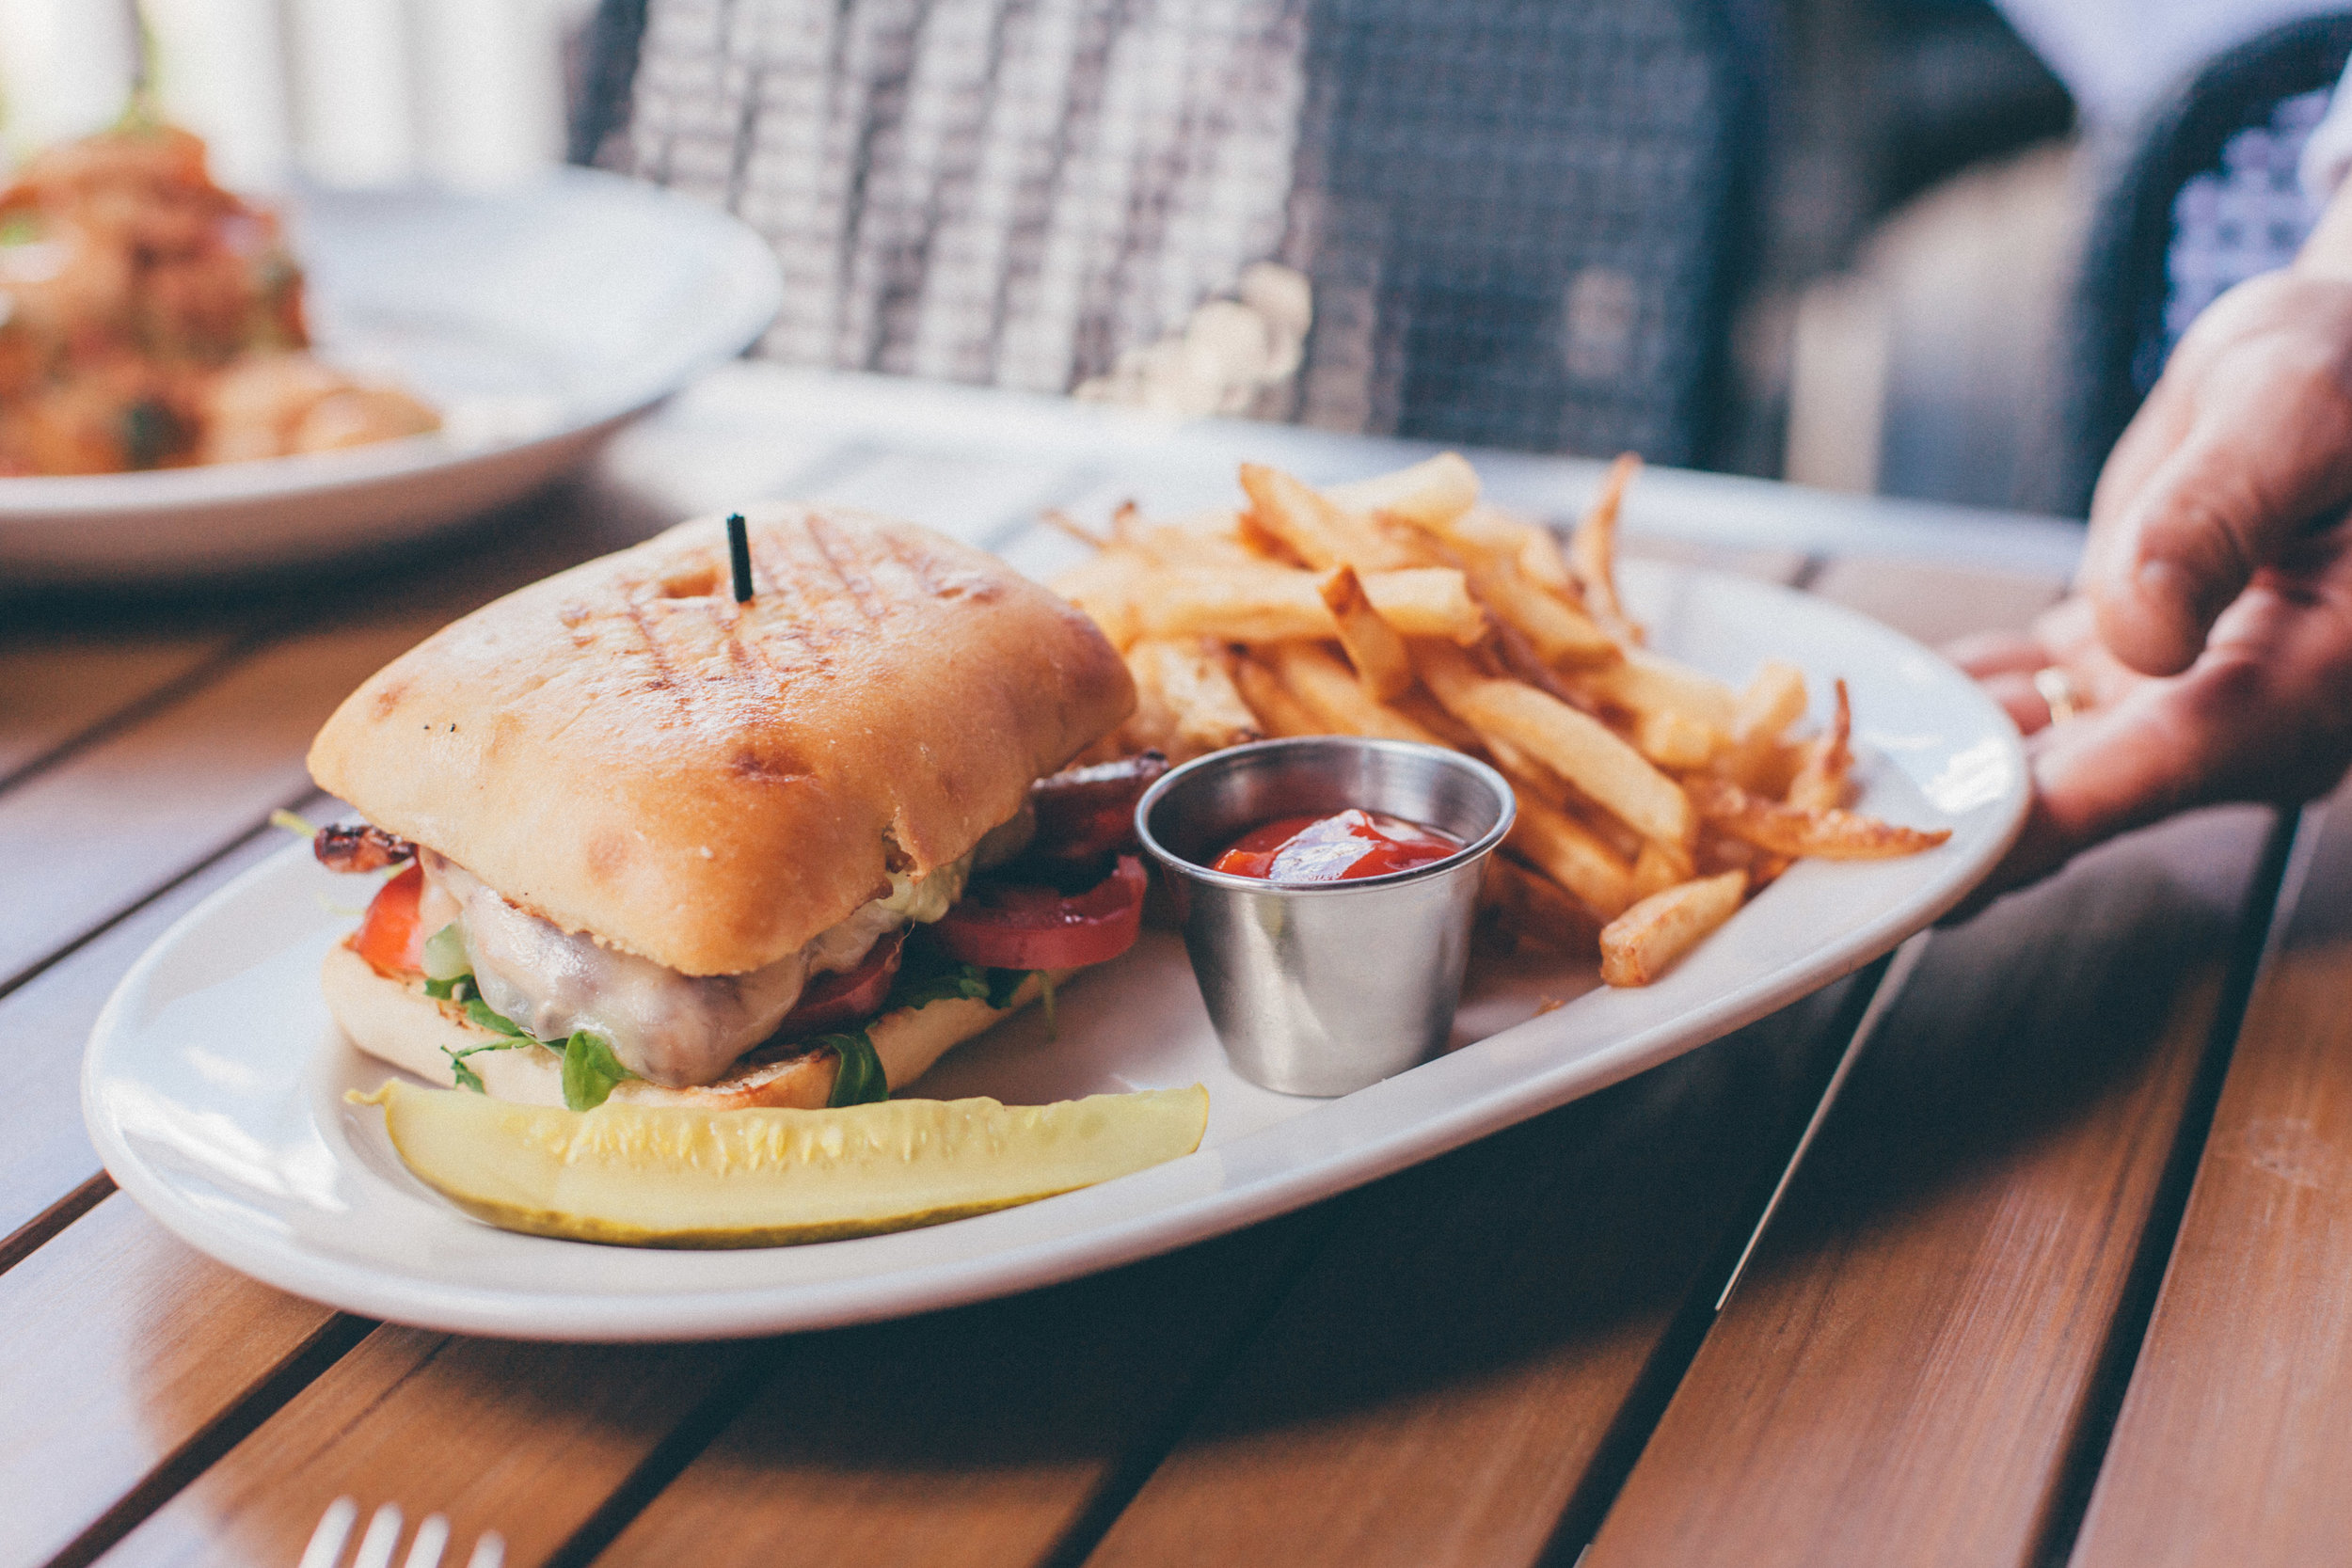 Grilled Chicken Panini: Grilled chicken, melted provolone, arugula, roma tomatoes, applewood smoked bacon, basil aioli in a pressed ciabatta bread.